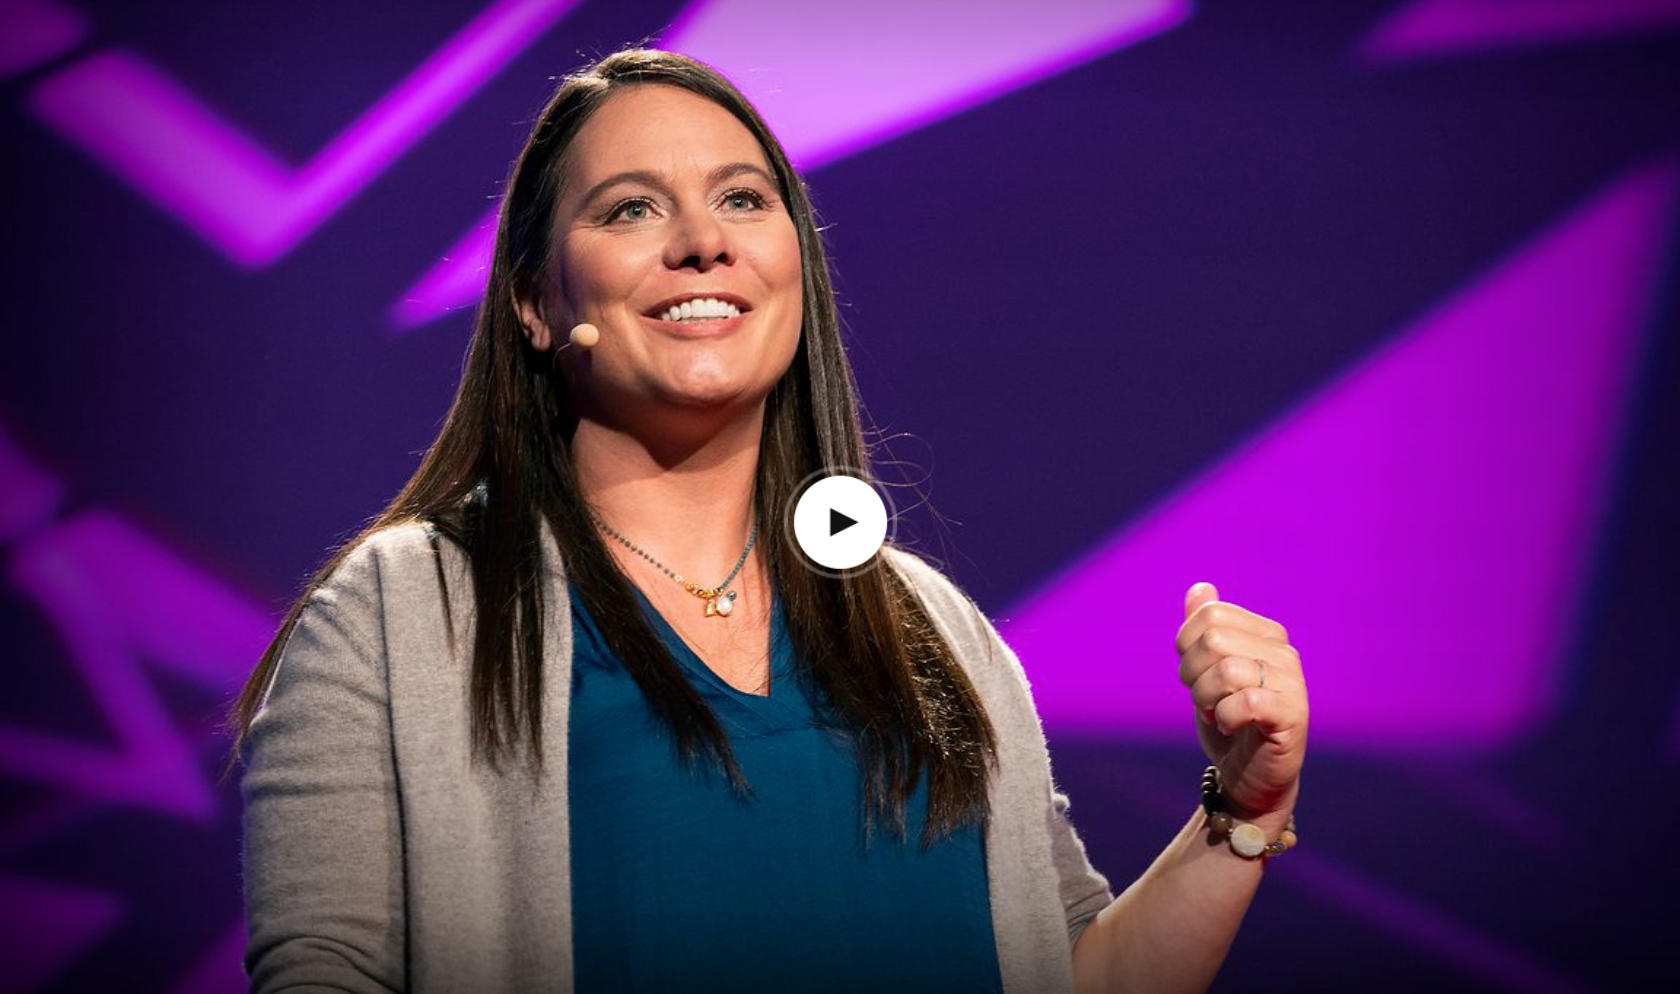 Angelicque White on stage delivering her TED Talk in November 2019